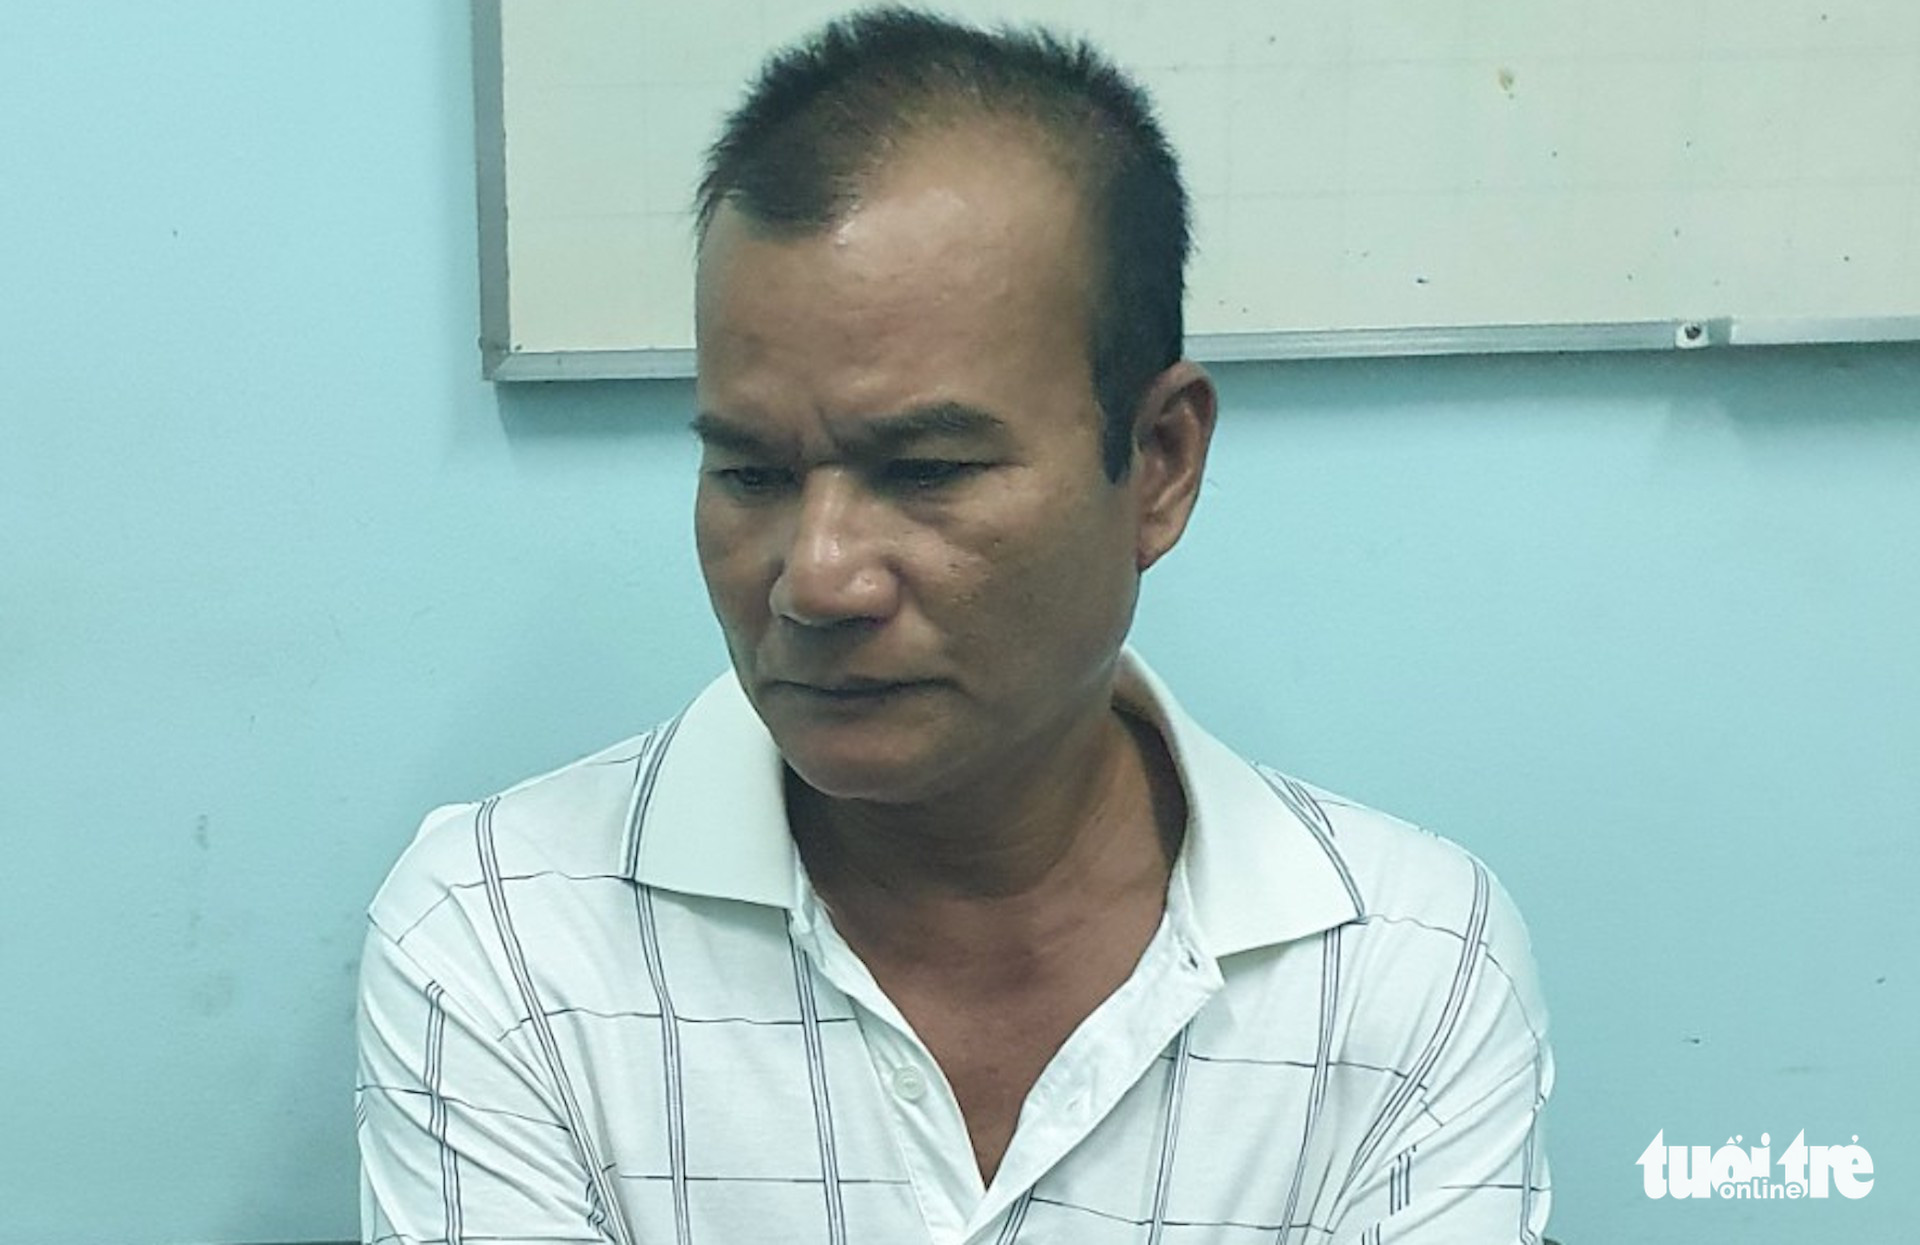 Kim Anh is held at the police station in Tra Vinh Province, Vietnam in this supplied photo.